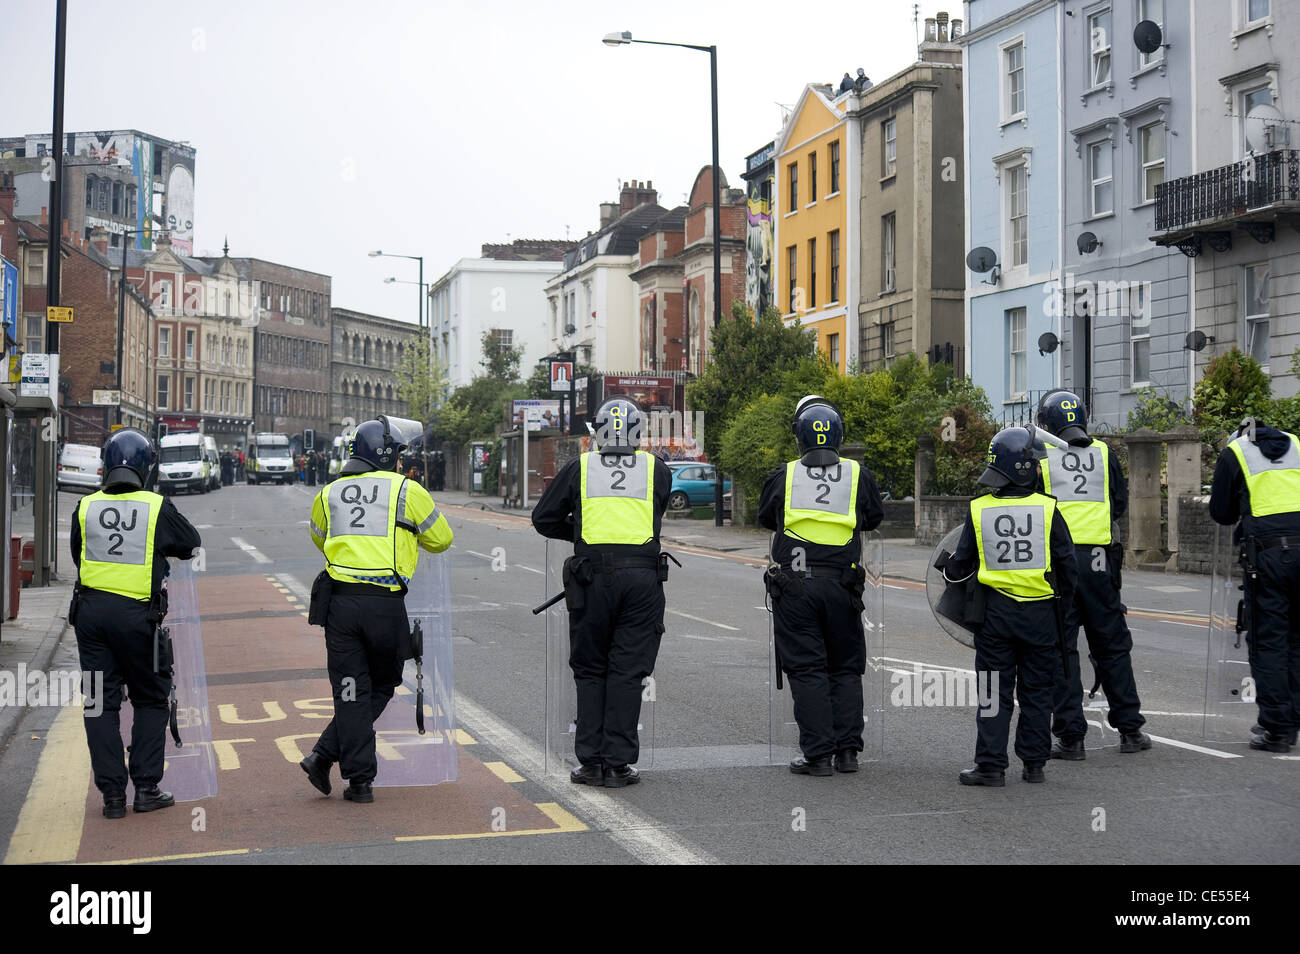 Riot police on Stokes Croft, Bristol - EDITORIAL USE ONLY - Stock Image